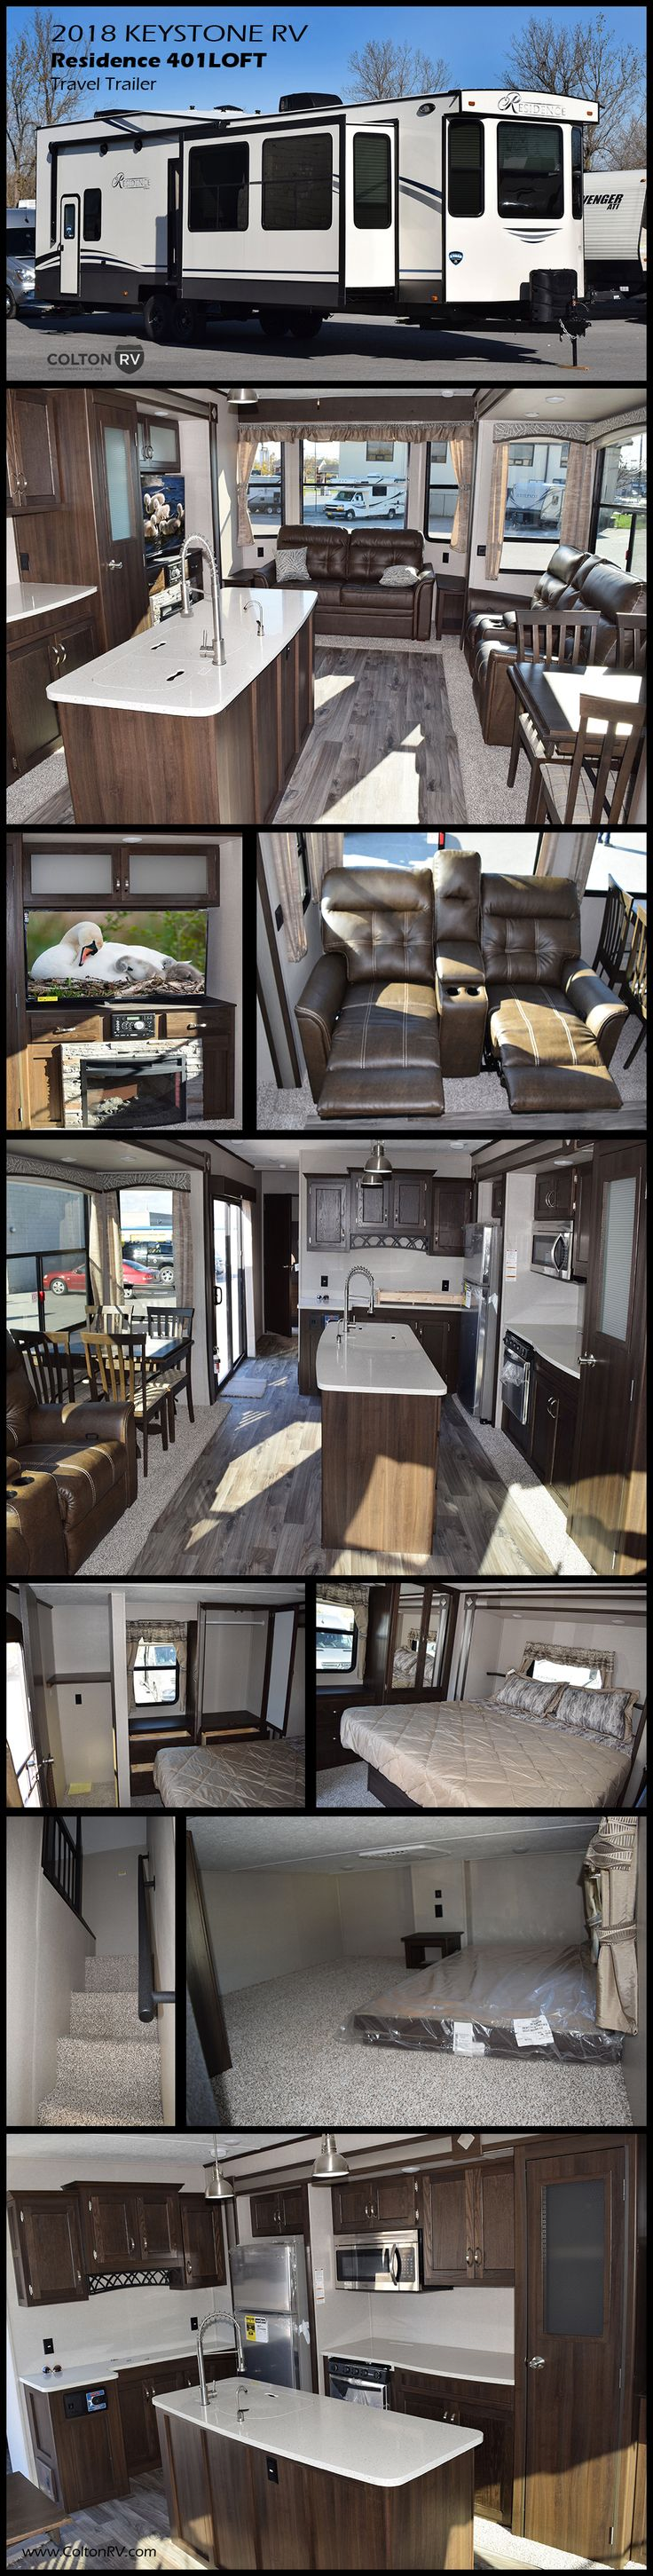 You will immediately feel at home in this beautiful destination trailer by Keystone RV! The large windows and sliding glass door let in loads of sunshine in this 401LOFT Residence Signature Series model. Head up the steps to a loft where you will find two bunk mats with a nightstand between. Along the wall across from the mats there is a space that has been prepped for a TV. The master bedroom has tons of storage and a private entry door which leads outside!